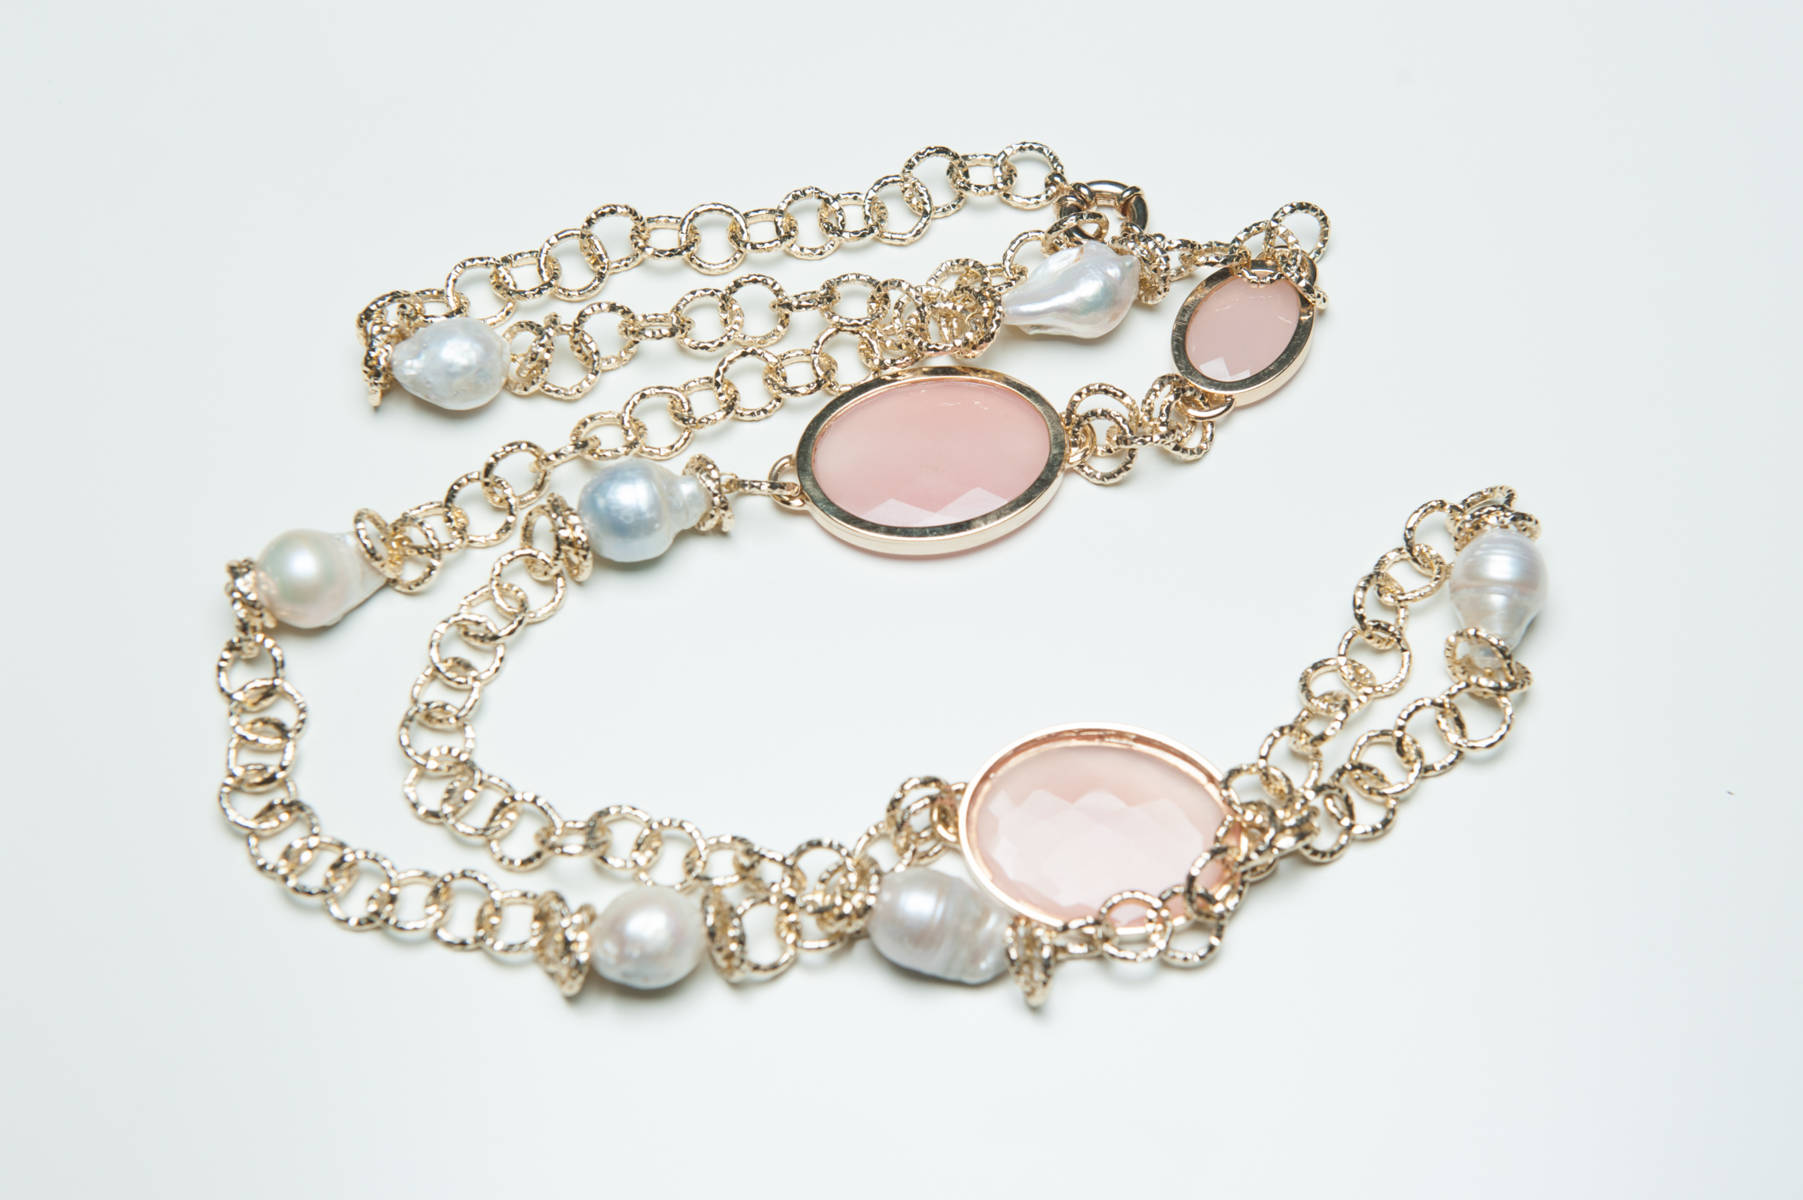 Giuseppina Fermi Rose Quartz Necklace